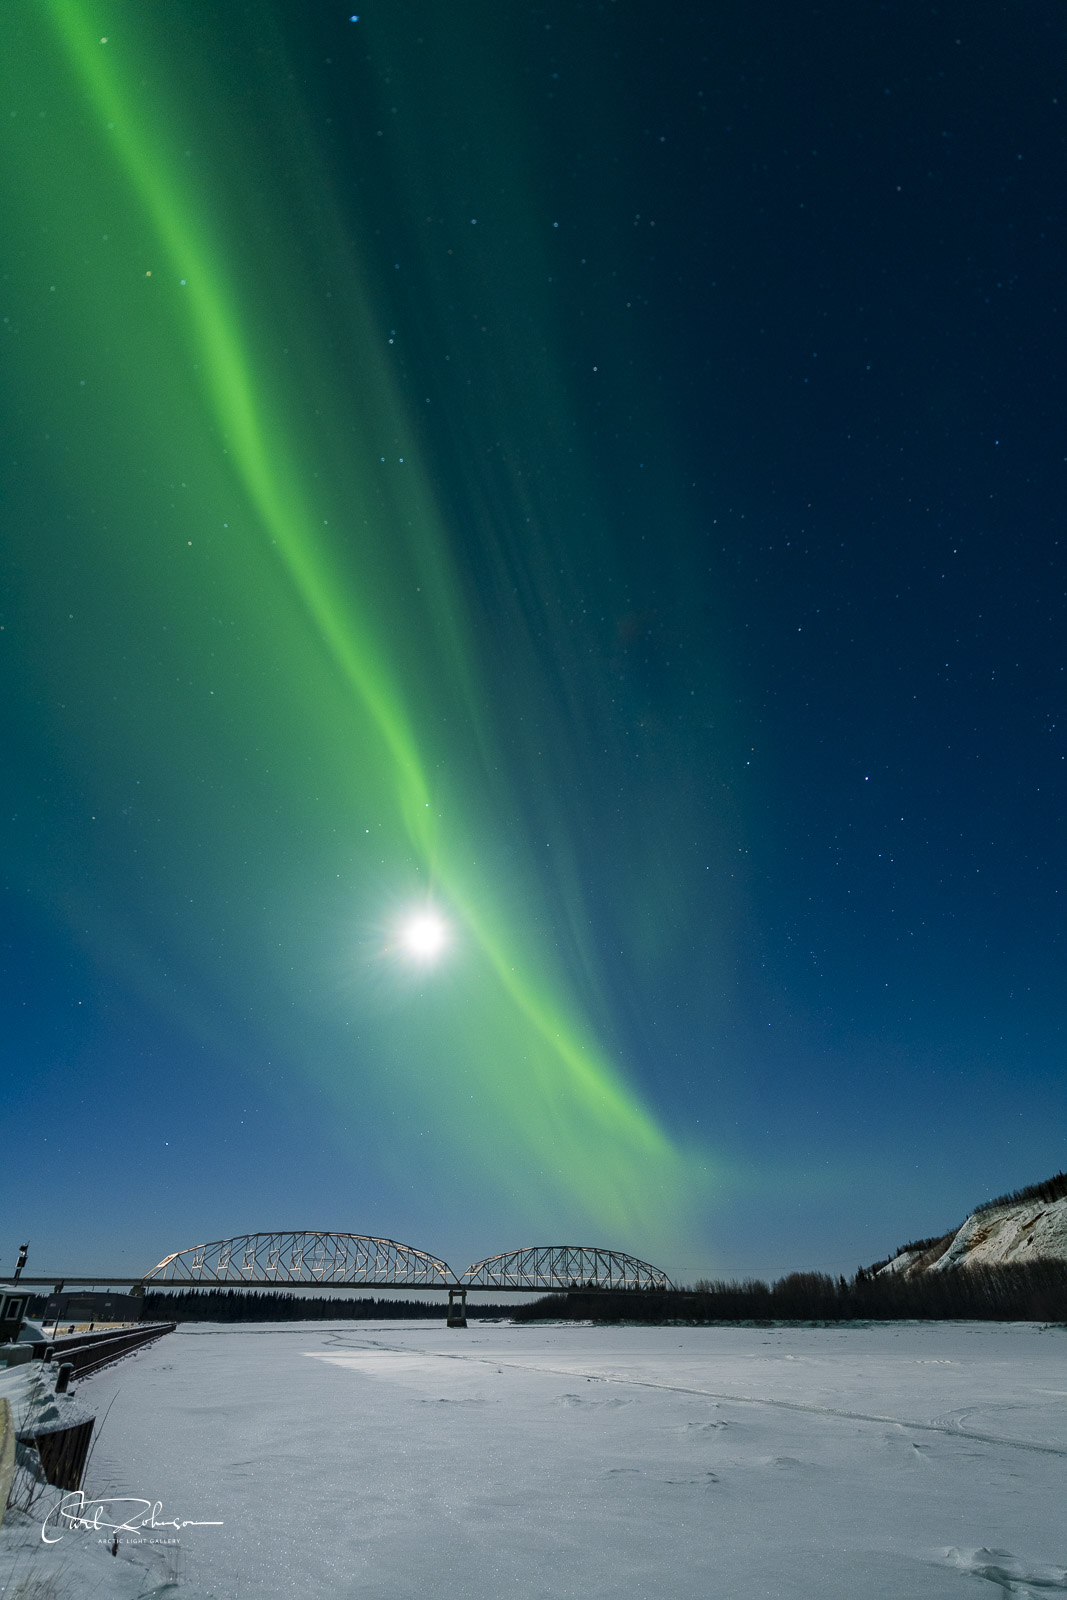 The aurora borealis towers over the bridge crossing the Tanana River at the Athabascan community of Nenana.